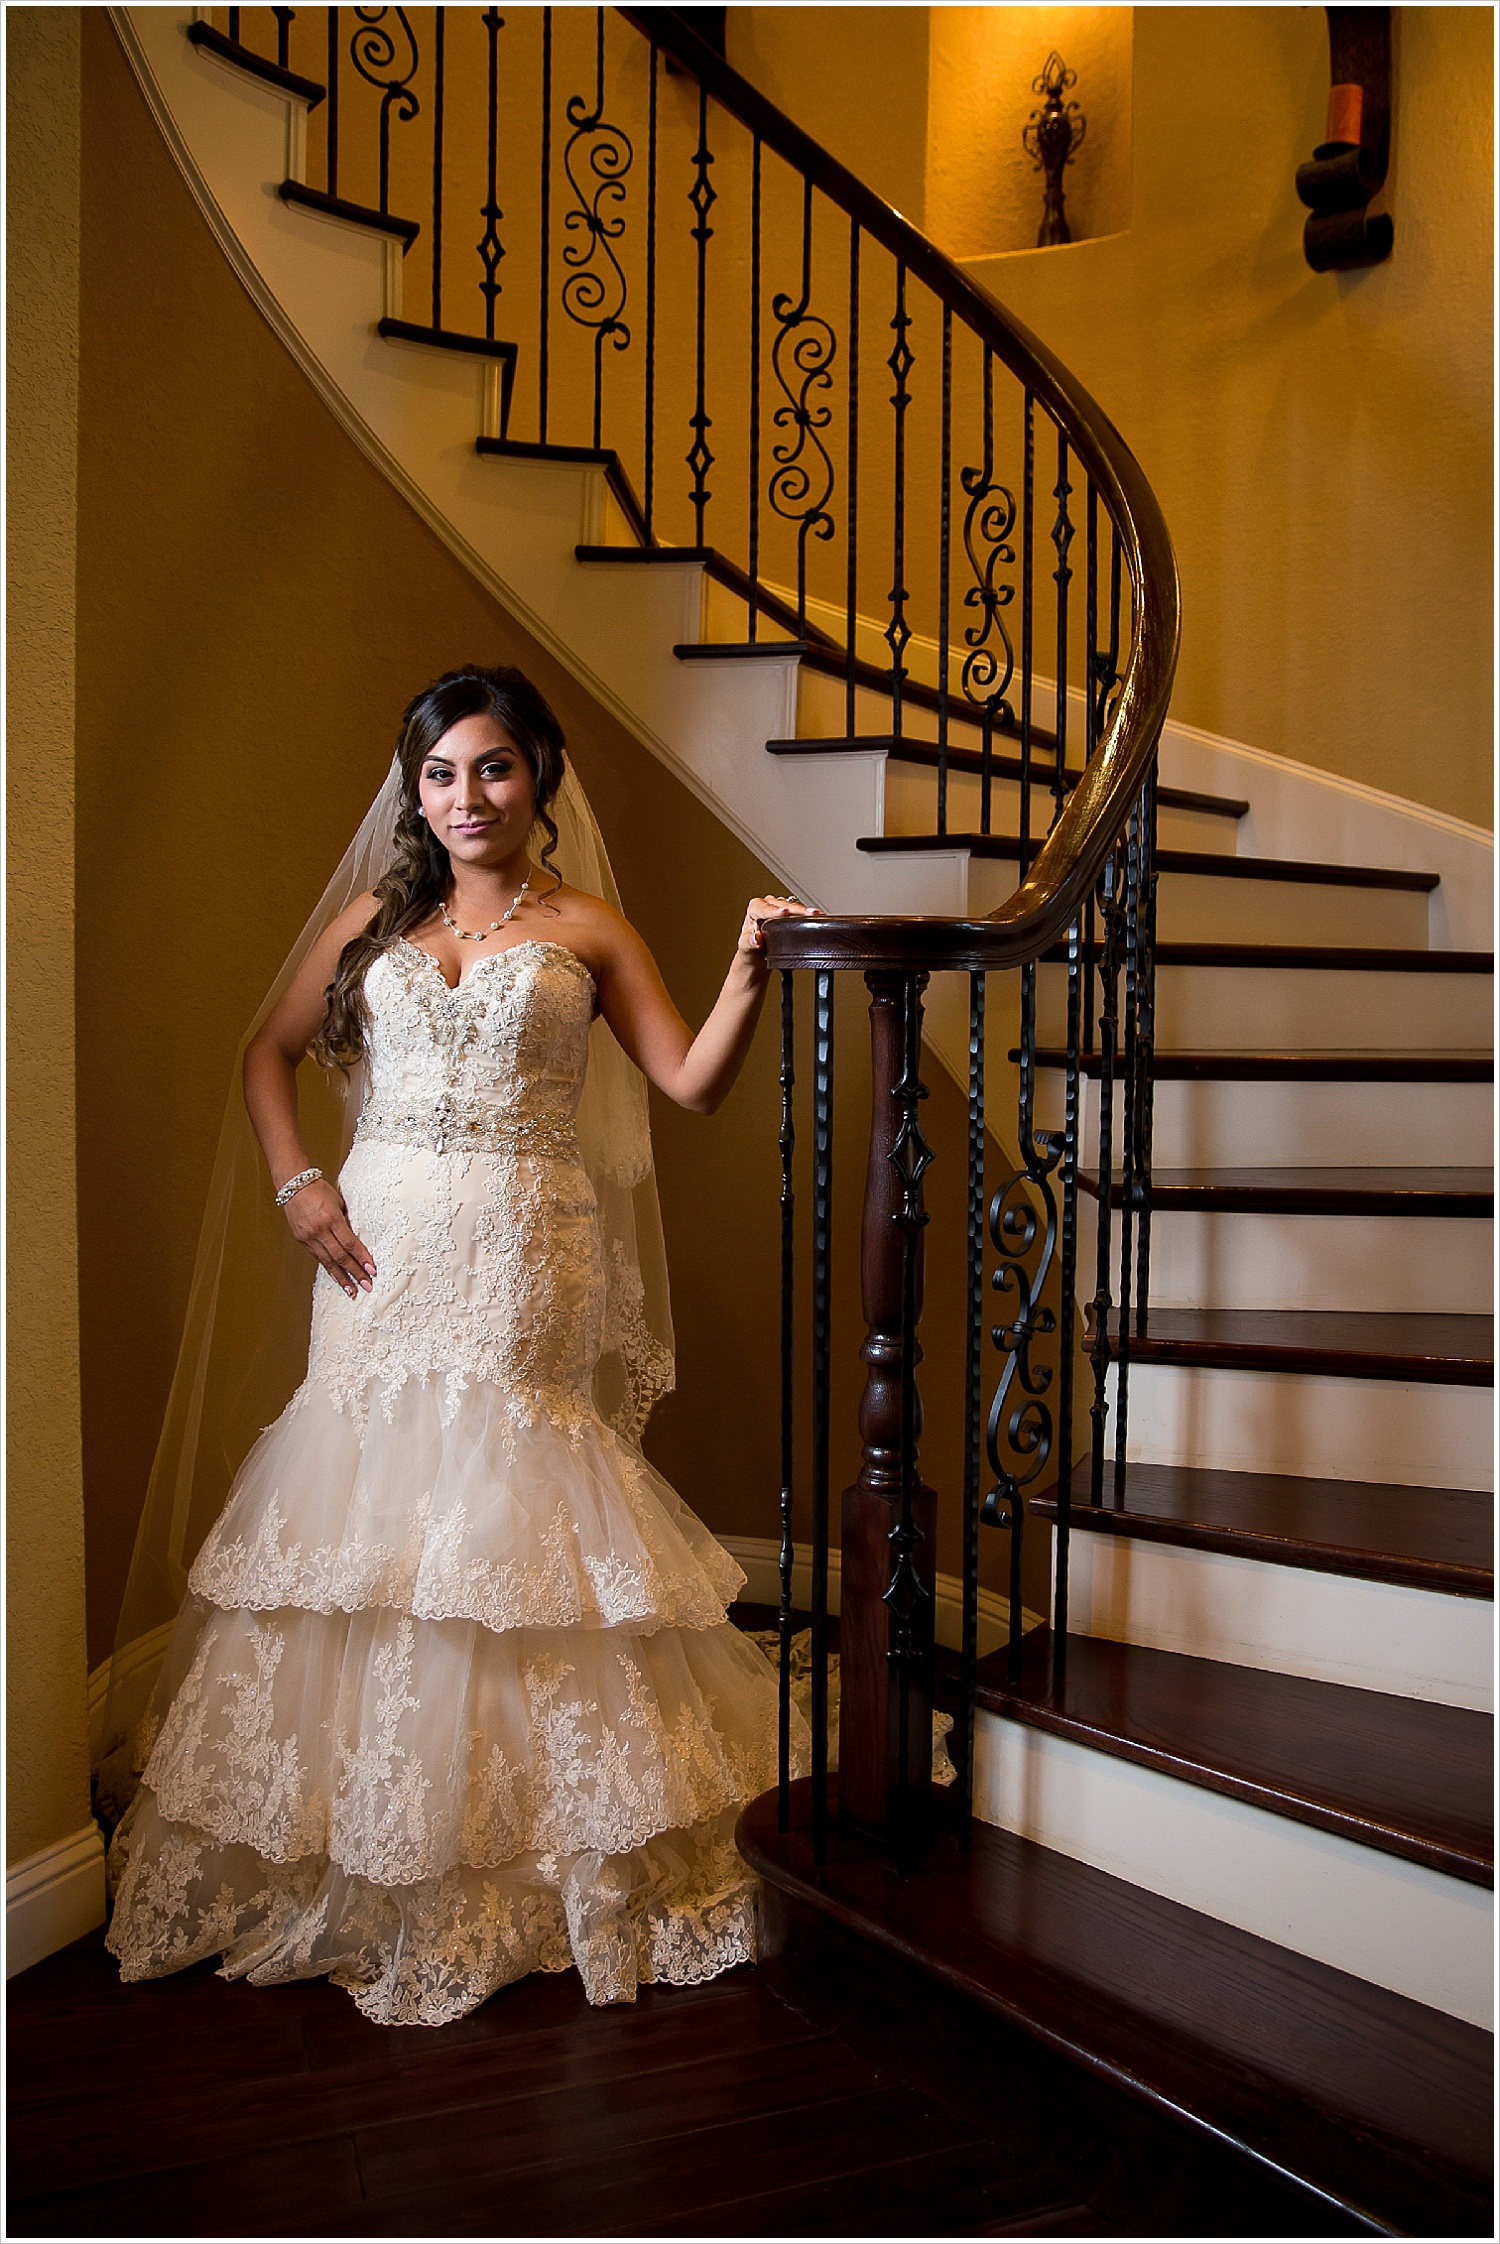 bride next to spiral staircase | Vera Estates in China Springs, Texas | Jason & Melaina Photography